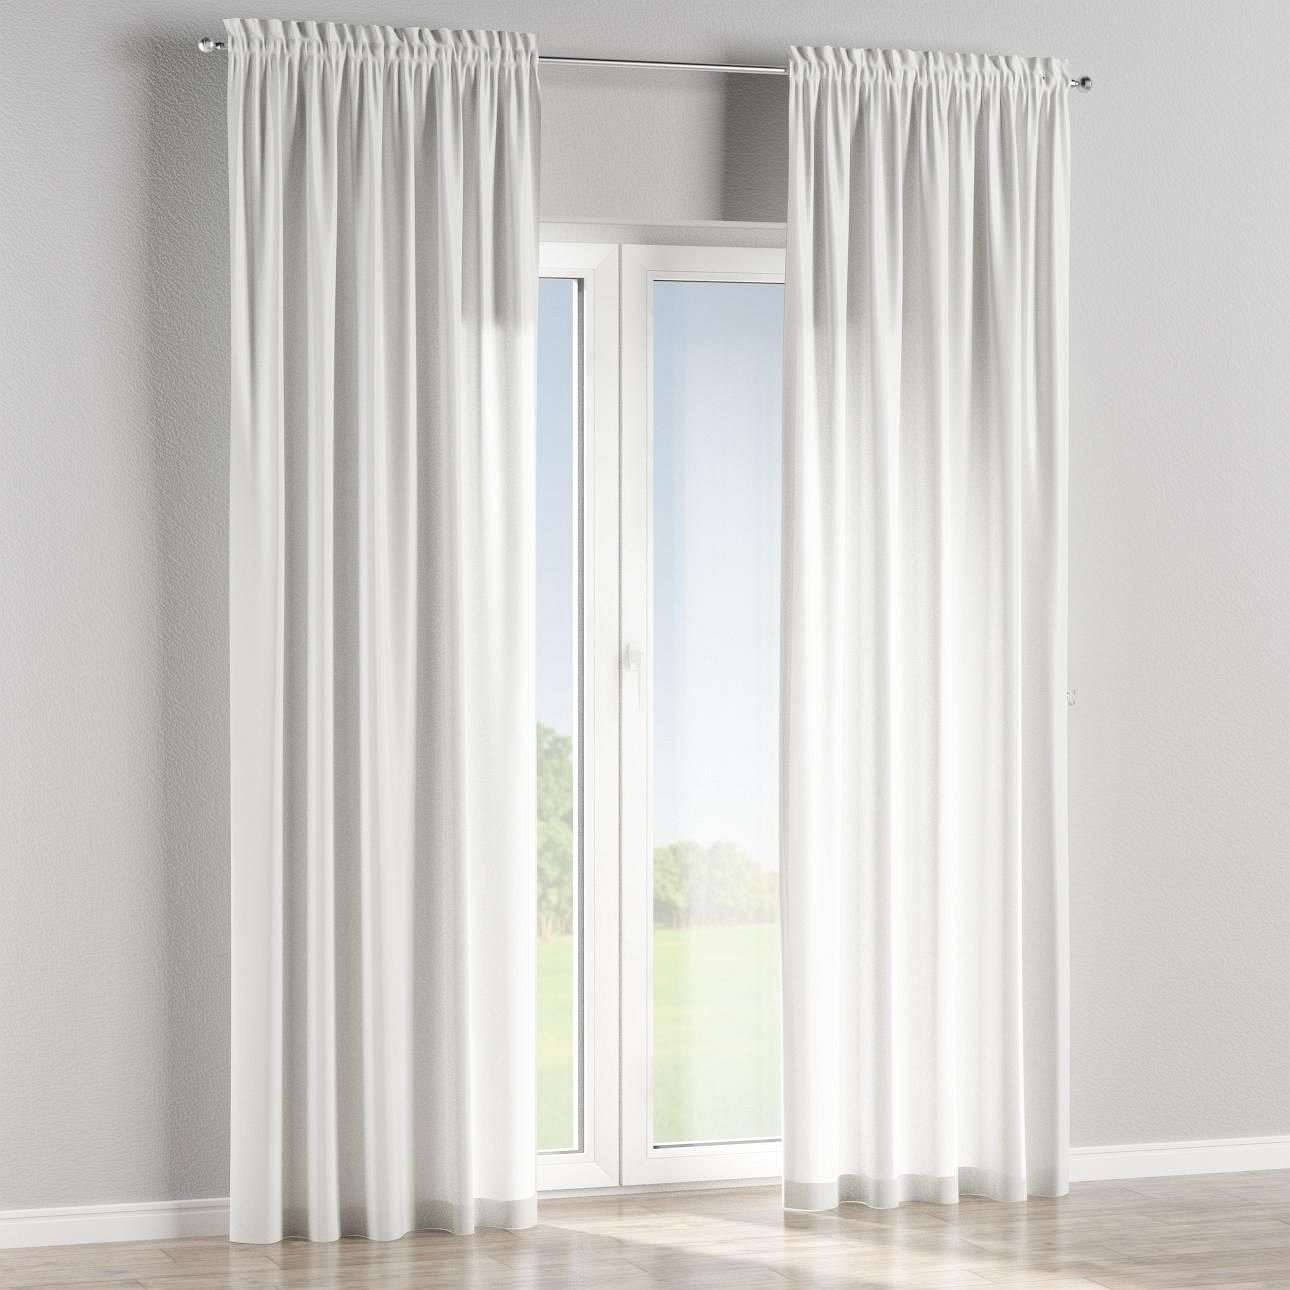 Slot and frill lined curtains in collection Flowers, fabric: 311-06